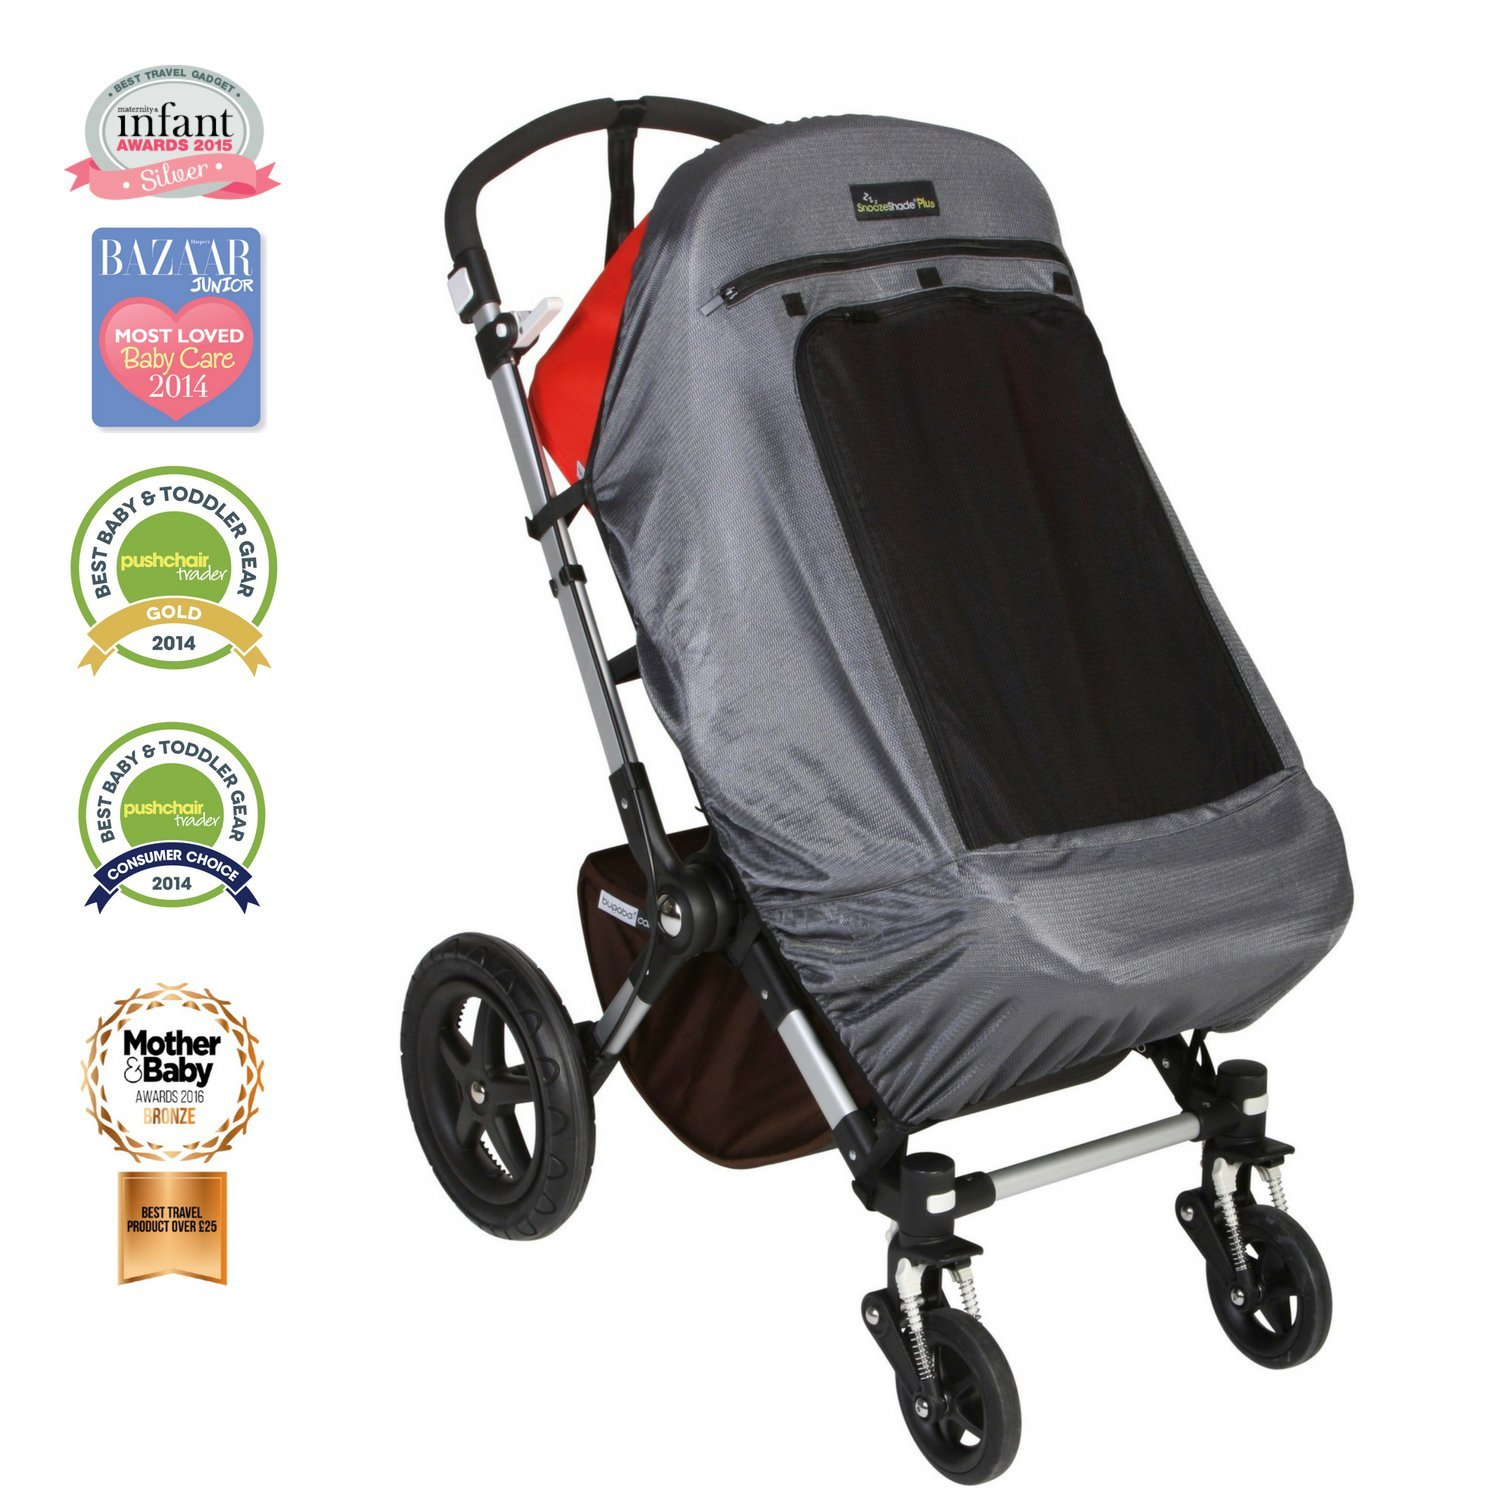 SnoozeShade Plus Deluxe | Universal fit sun shade for strollers | 360-degree sun and UV protection | Sleep shade and mosquito net | Recommended for 6m+ by SnoozeShade